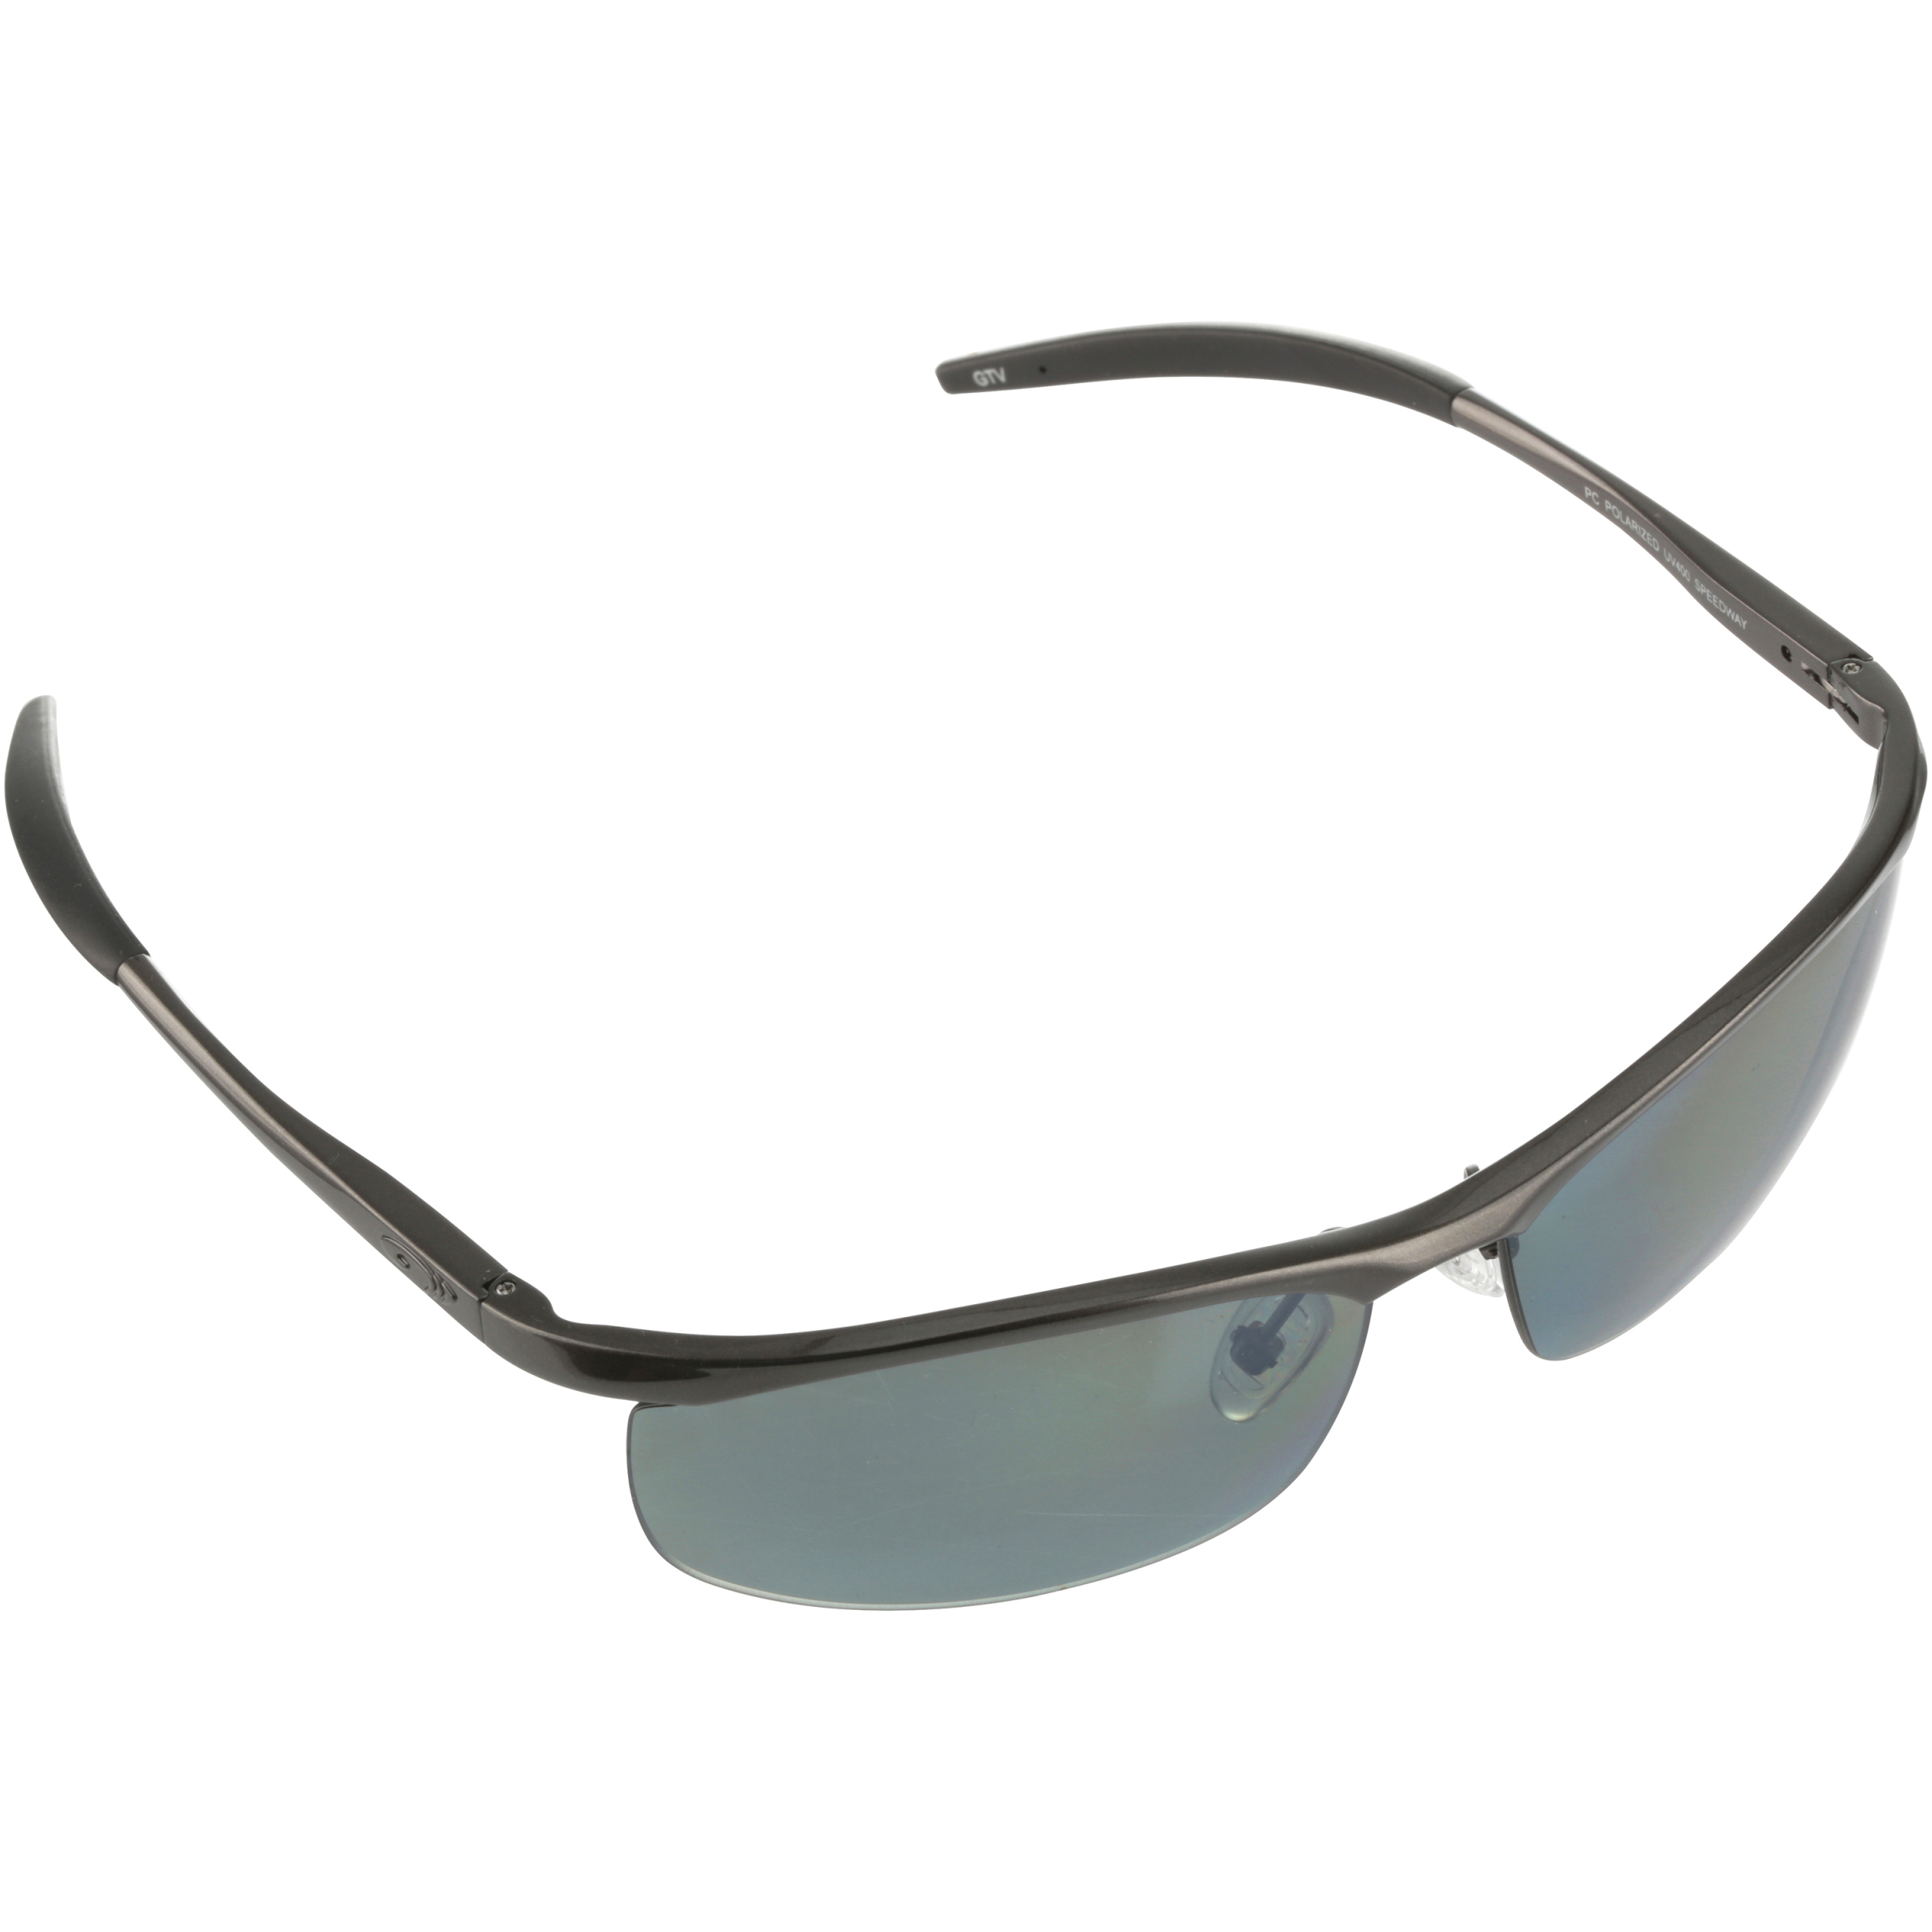 7e87857581 Octo8 - Octo® Aluminum Alloy Frame Polarized Optics Sunglasses - Walmart.com